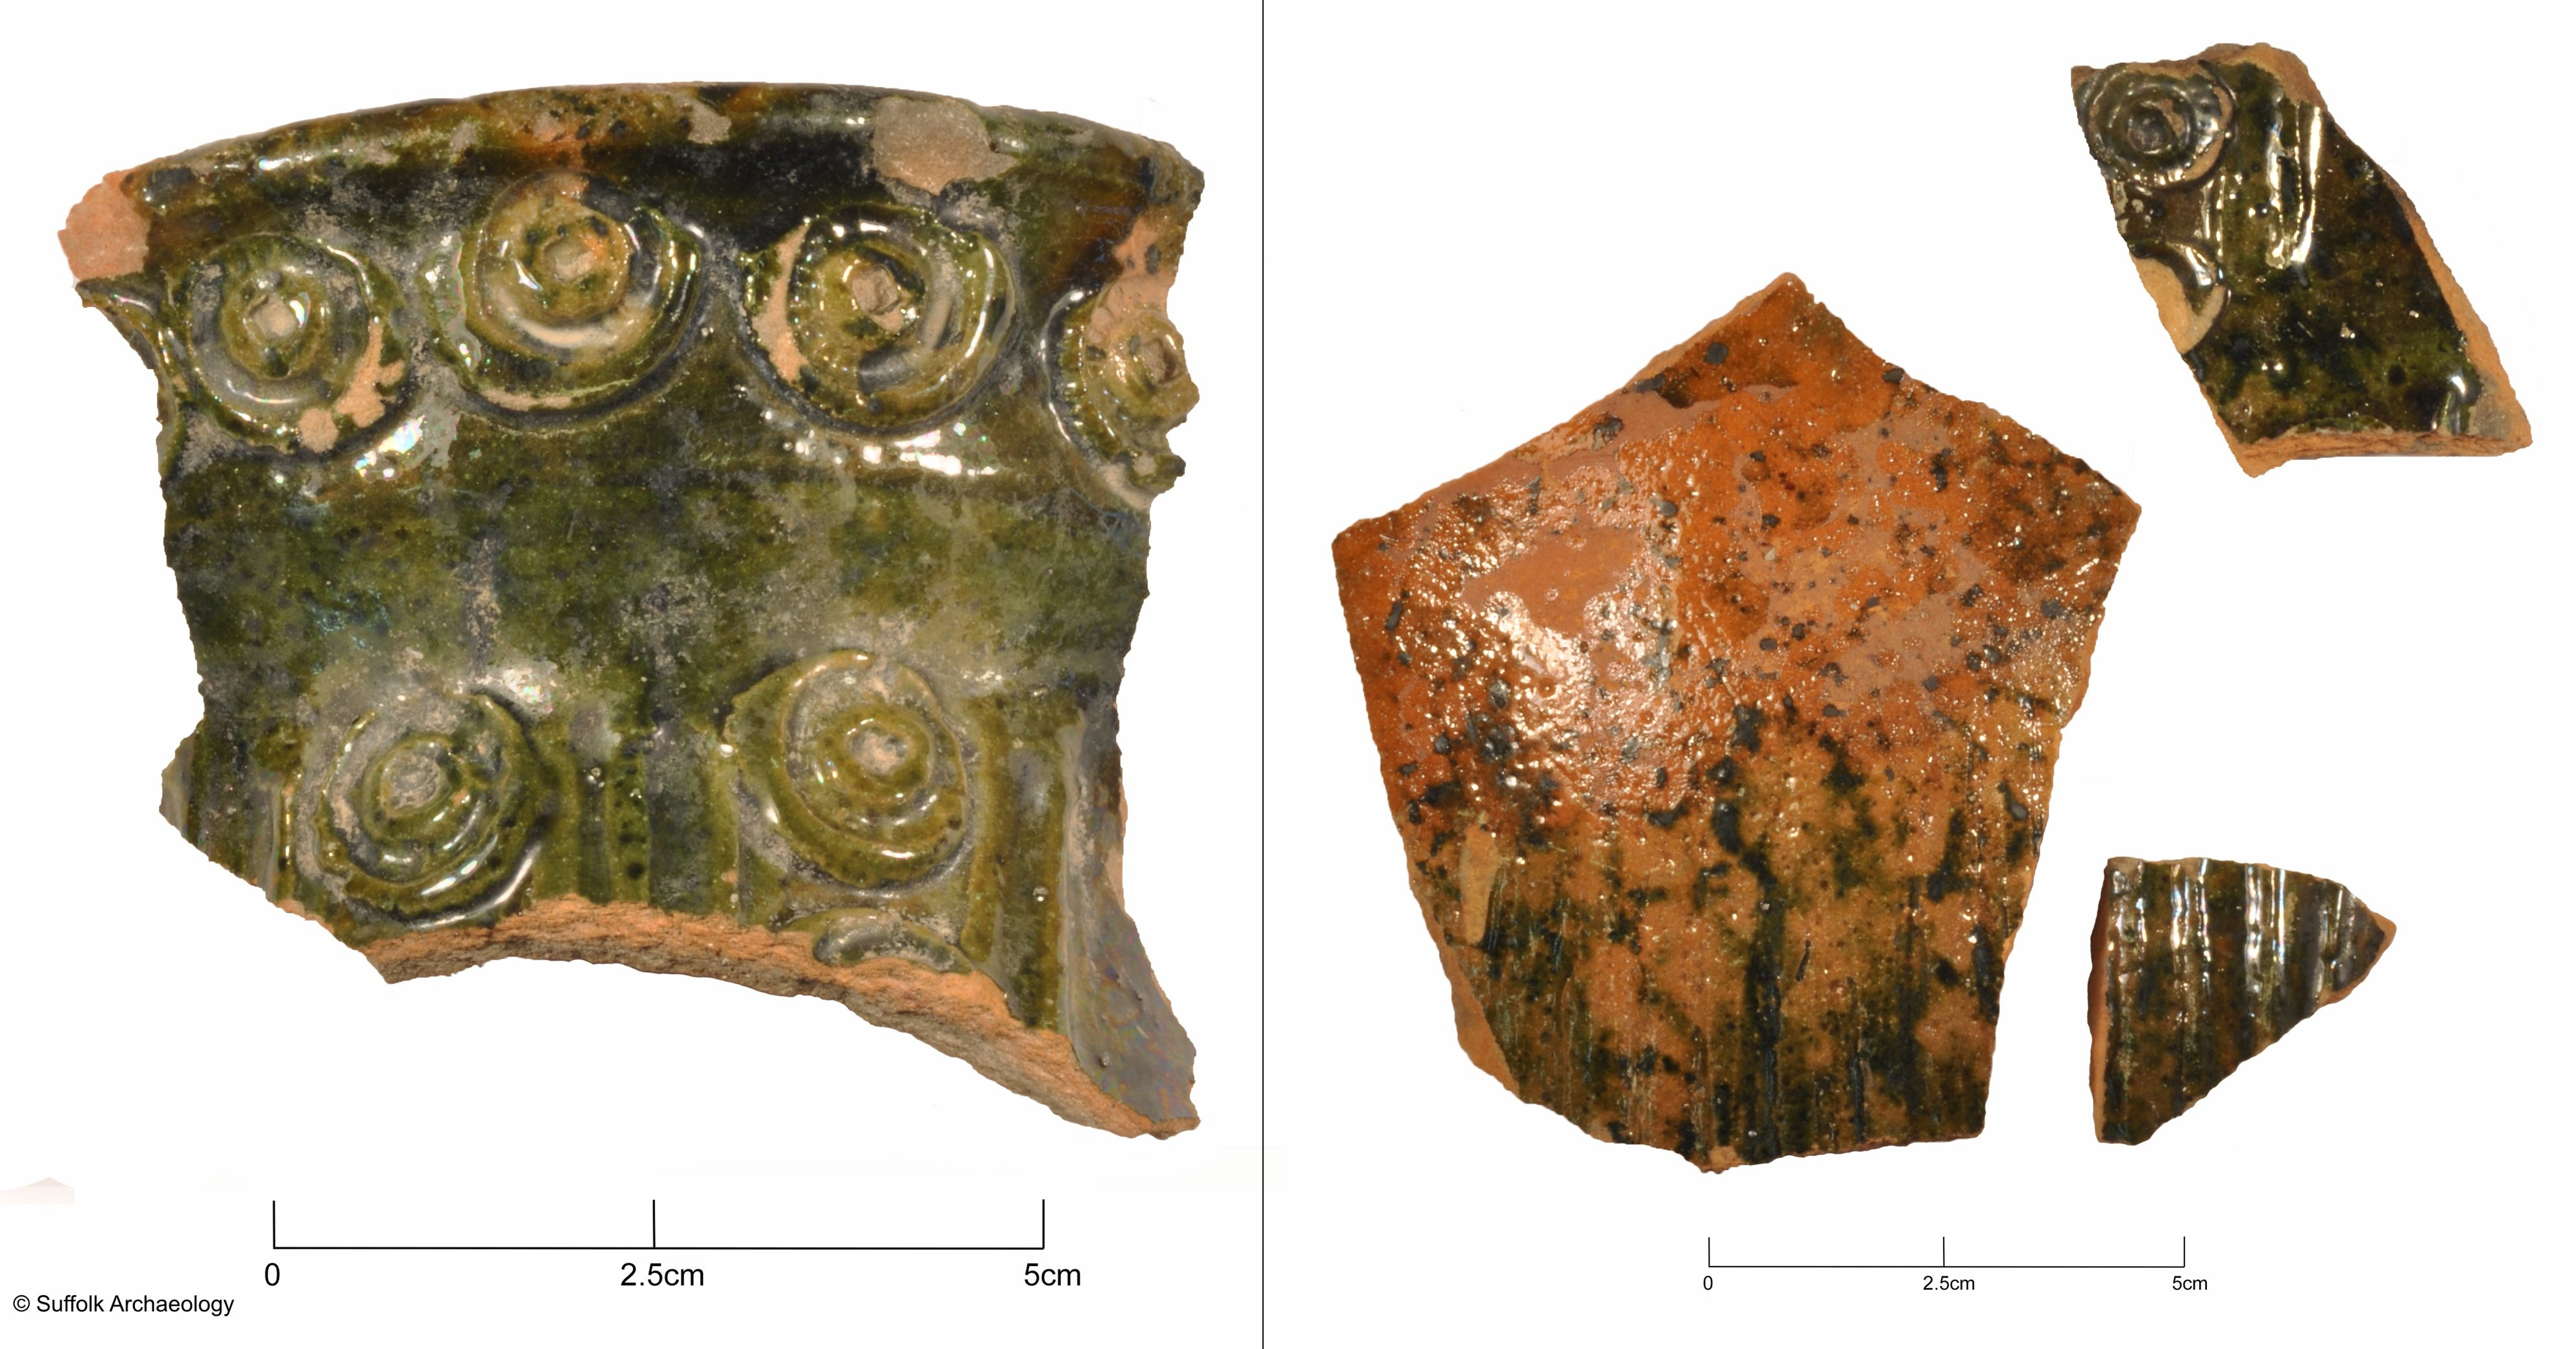 Fragments of 13th-14th century jugs from Hedingham.